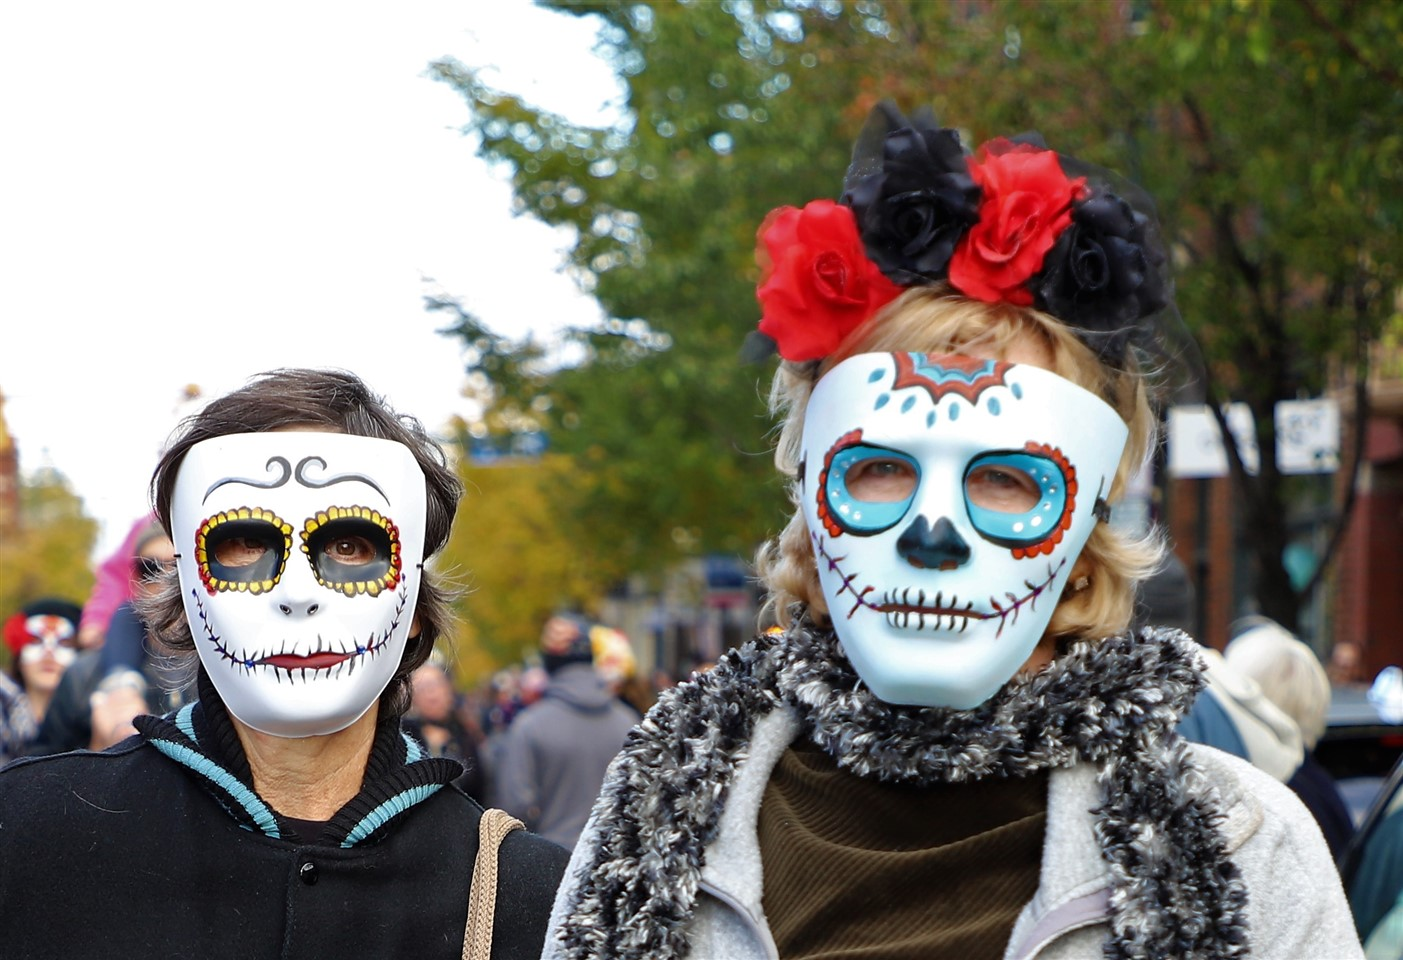 2018 11 03 280 Cleveland Day of the Dead Parade.jpg